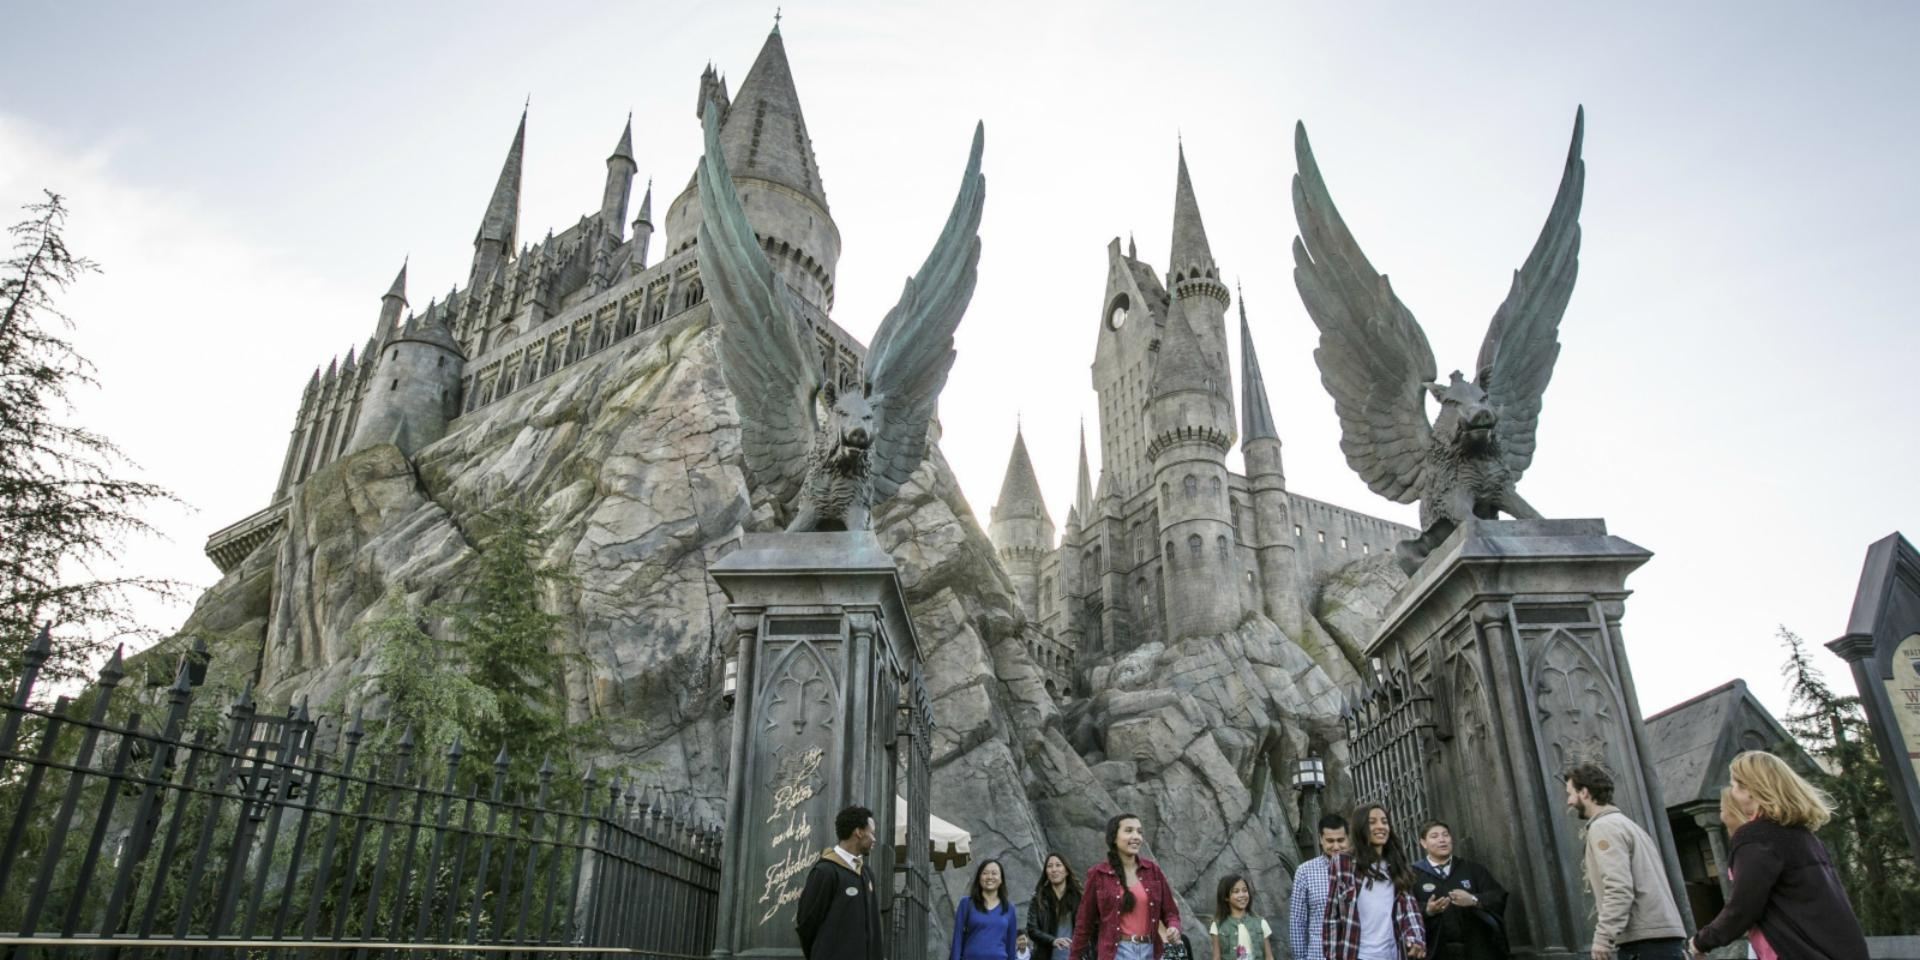 The Wizzarding World of Harry Potter, Hollywood